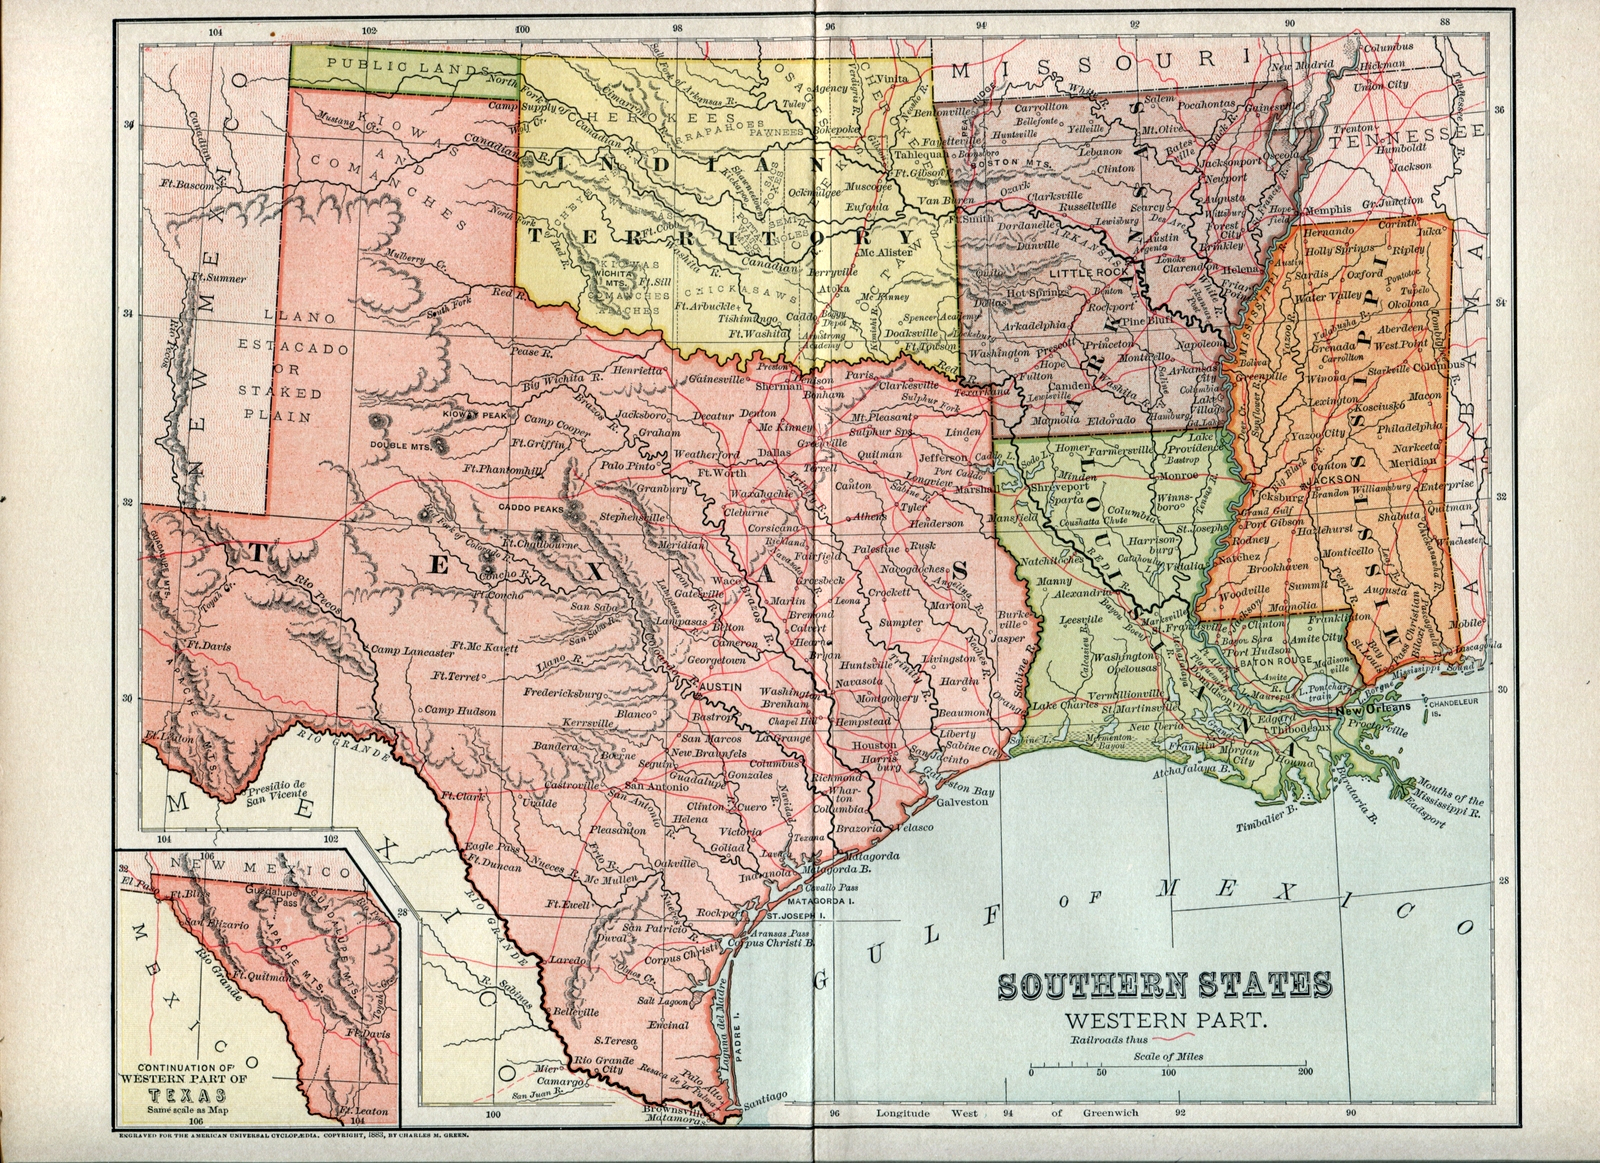 Oklahoma Arkansas Border Map And Travel Information | Download Free - Map Of Oklahoma And Texas Together